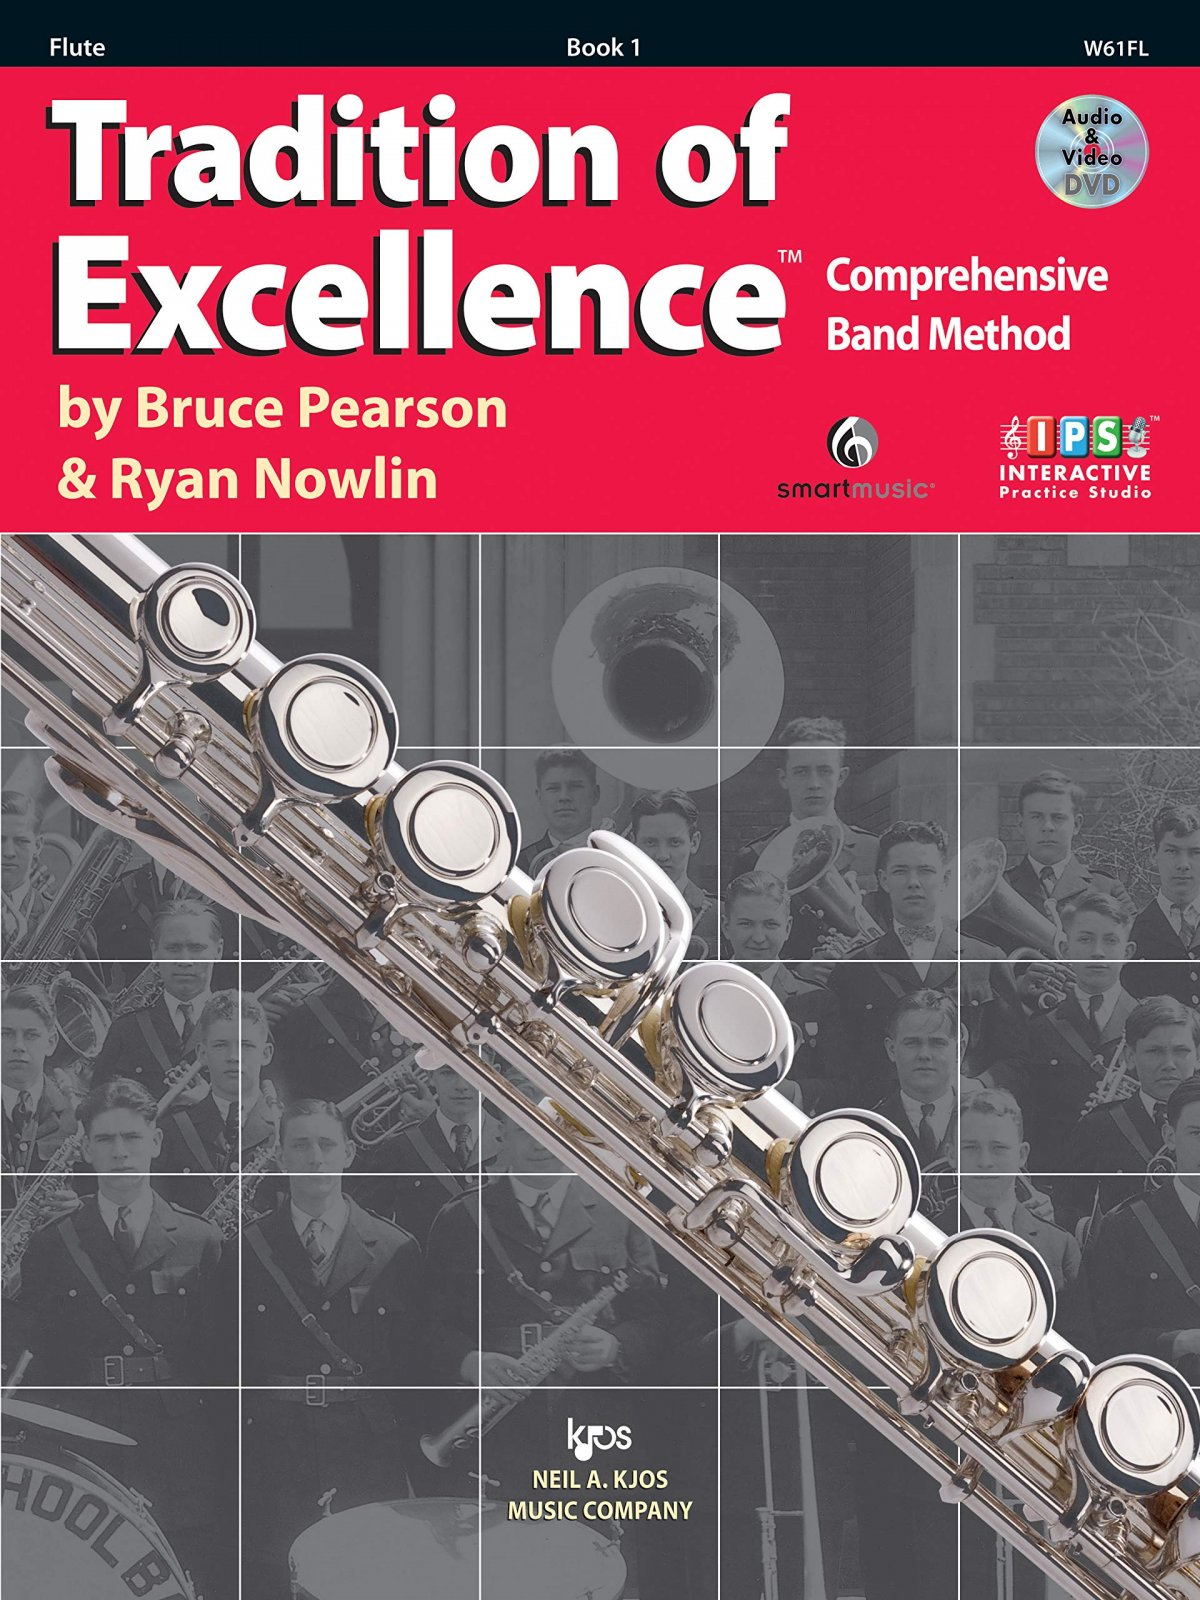 Flute Book 1 Tradition of Excellence Comprehensive Band Method 2nd Edition